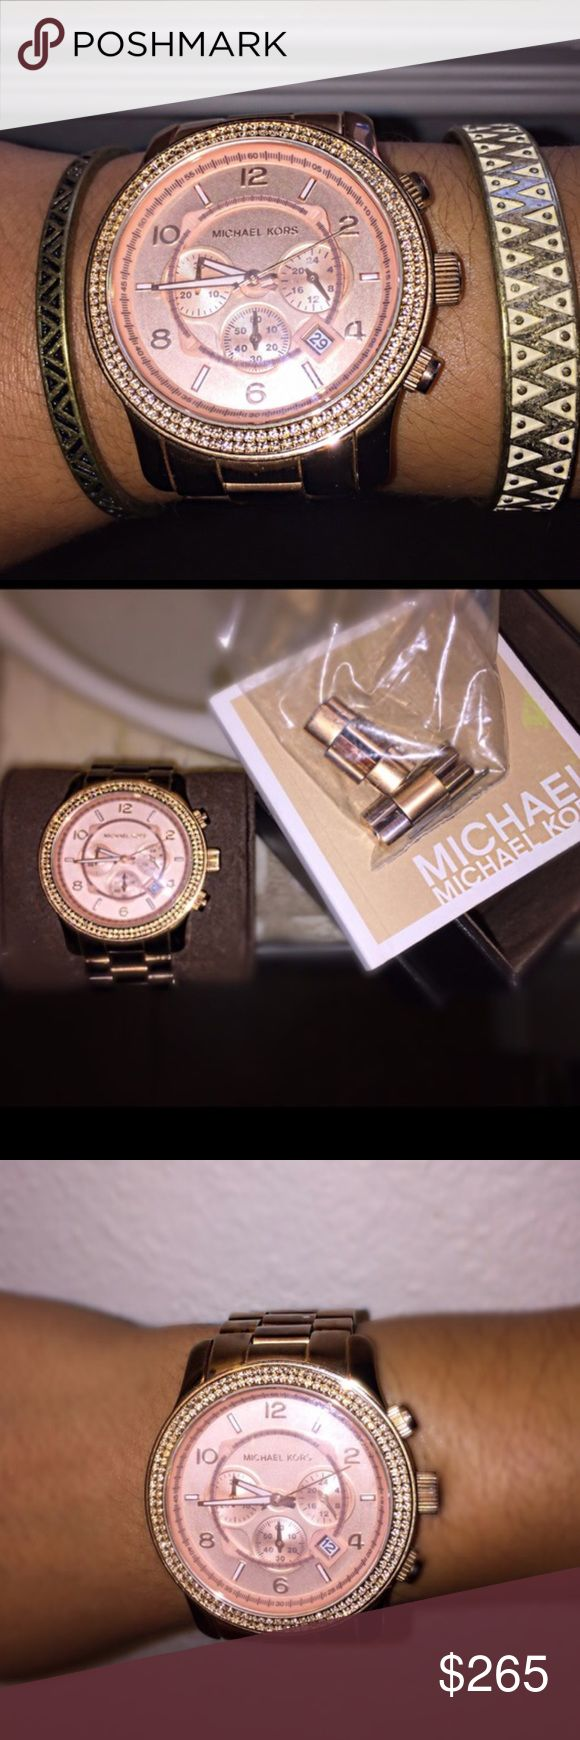 MK Rose Gold Oversized Watch MK5576 Michael Kors large face stainless steel watch in rose gold. All links, and booklet included in the box. Has a handful of scratches and wear on the side that clips on the wrist. Face of watch and diamonds are in excellent condition.  Beautiful watch, not sold any more.  Retails $250.00 new. NO TRADES. You will not be able to find this watch for anything less!!!! Michael Kors Accessories Watches